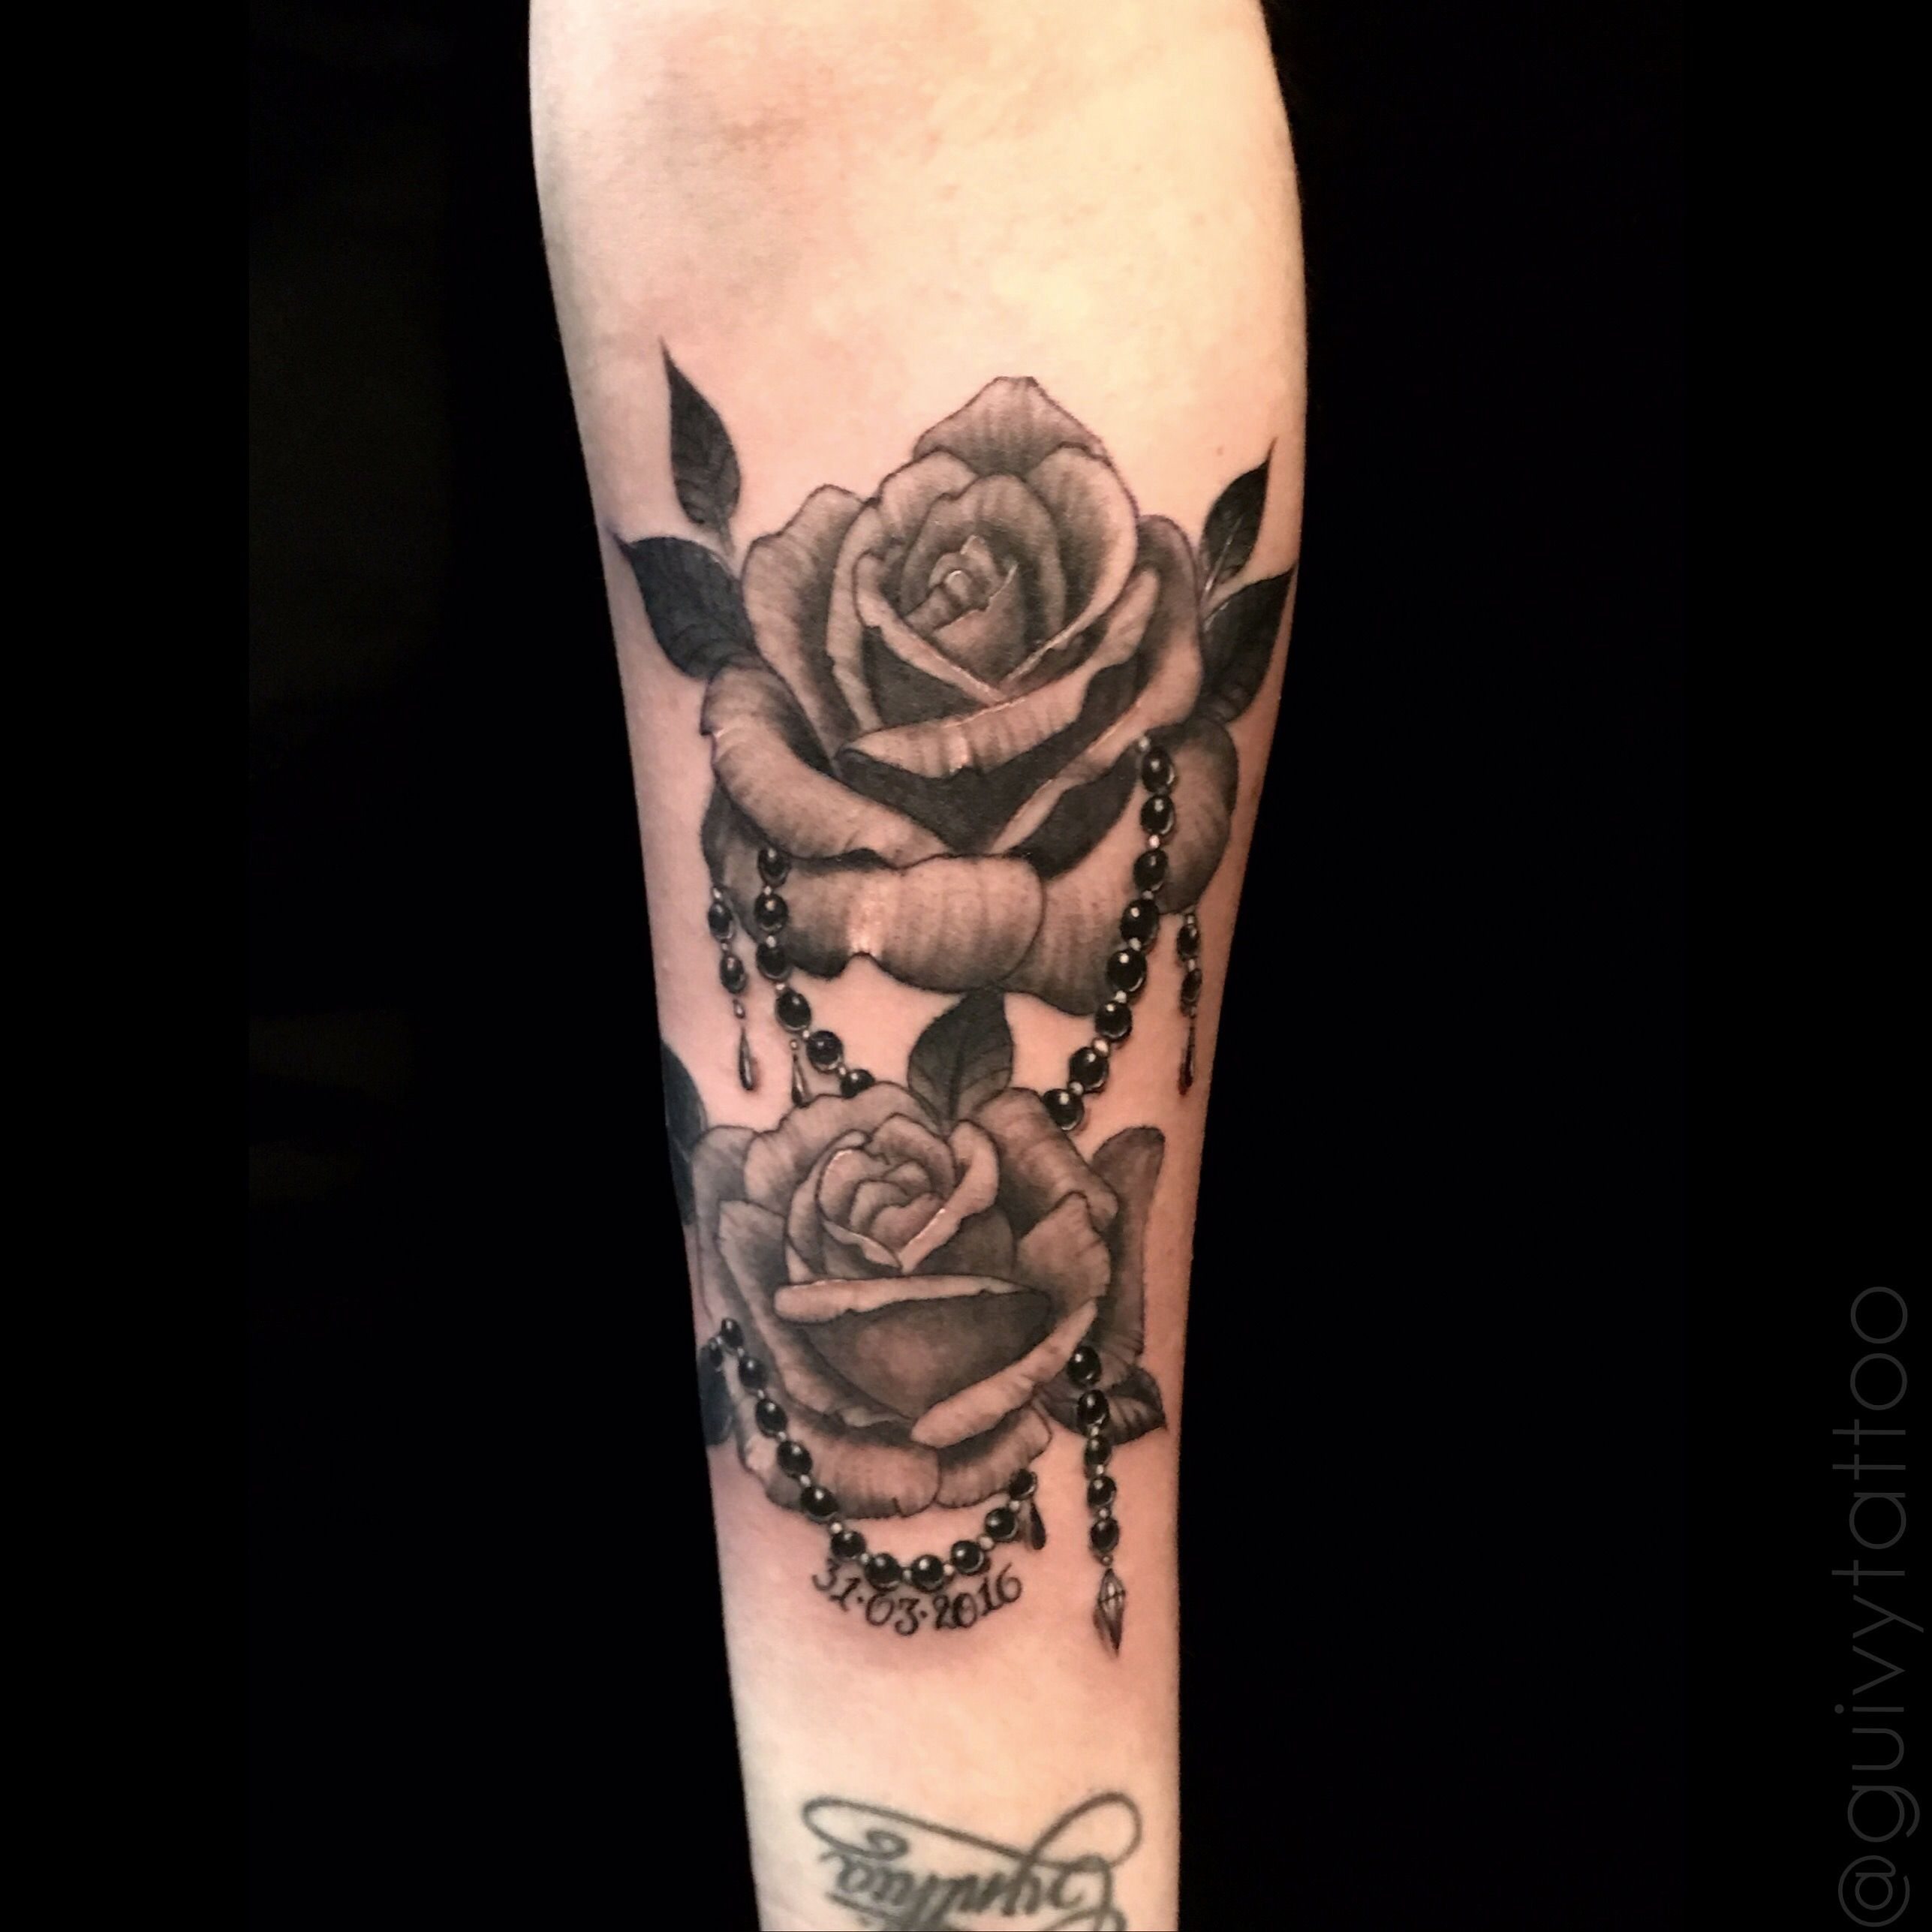 tattoo by guivy art for sinners tattoo geneva switzerland roses rose tattoo. Black Bedroom Furniture Sets. Home Design Ideas